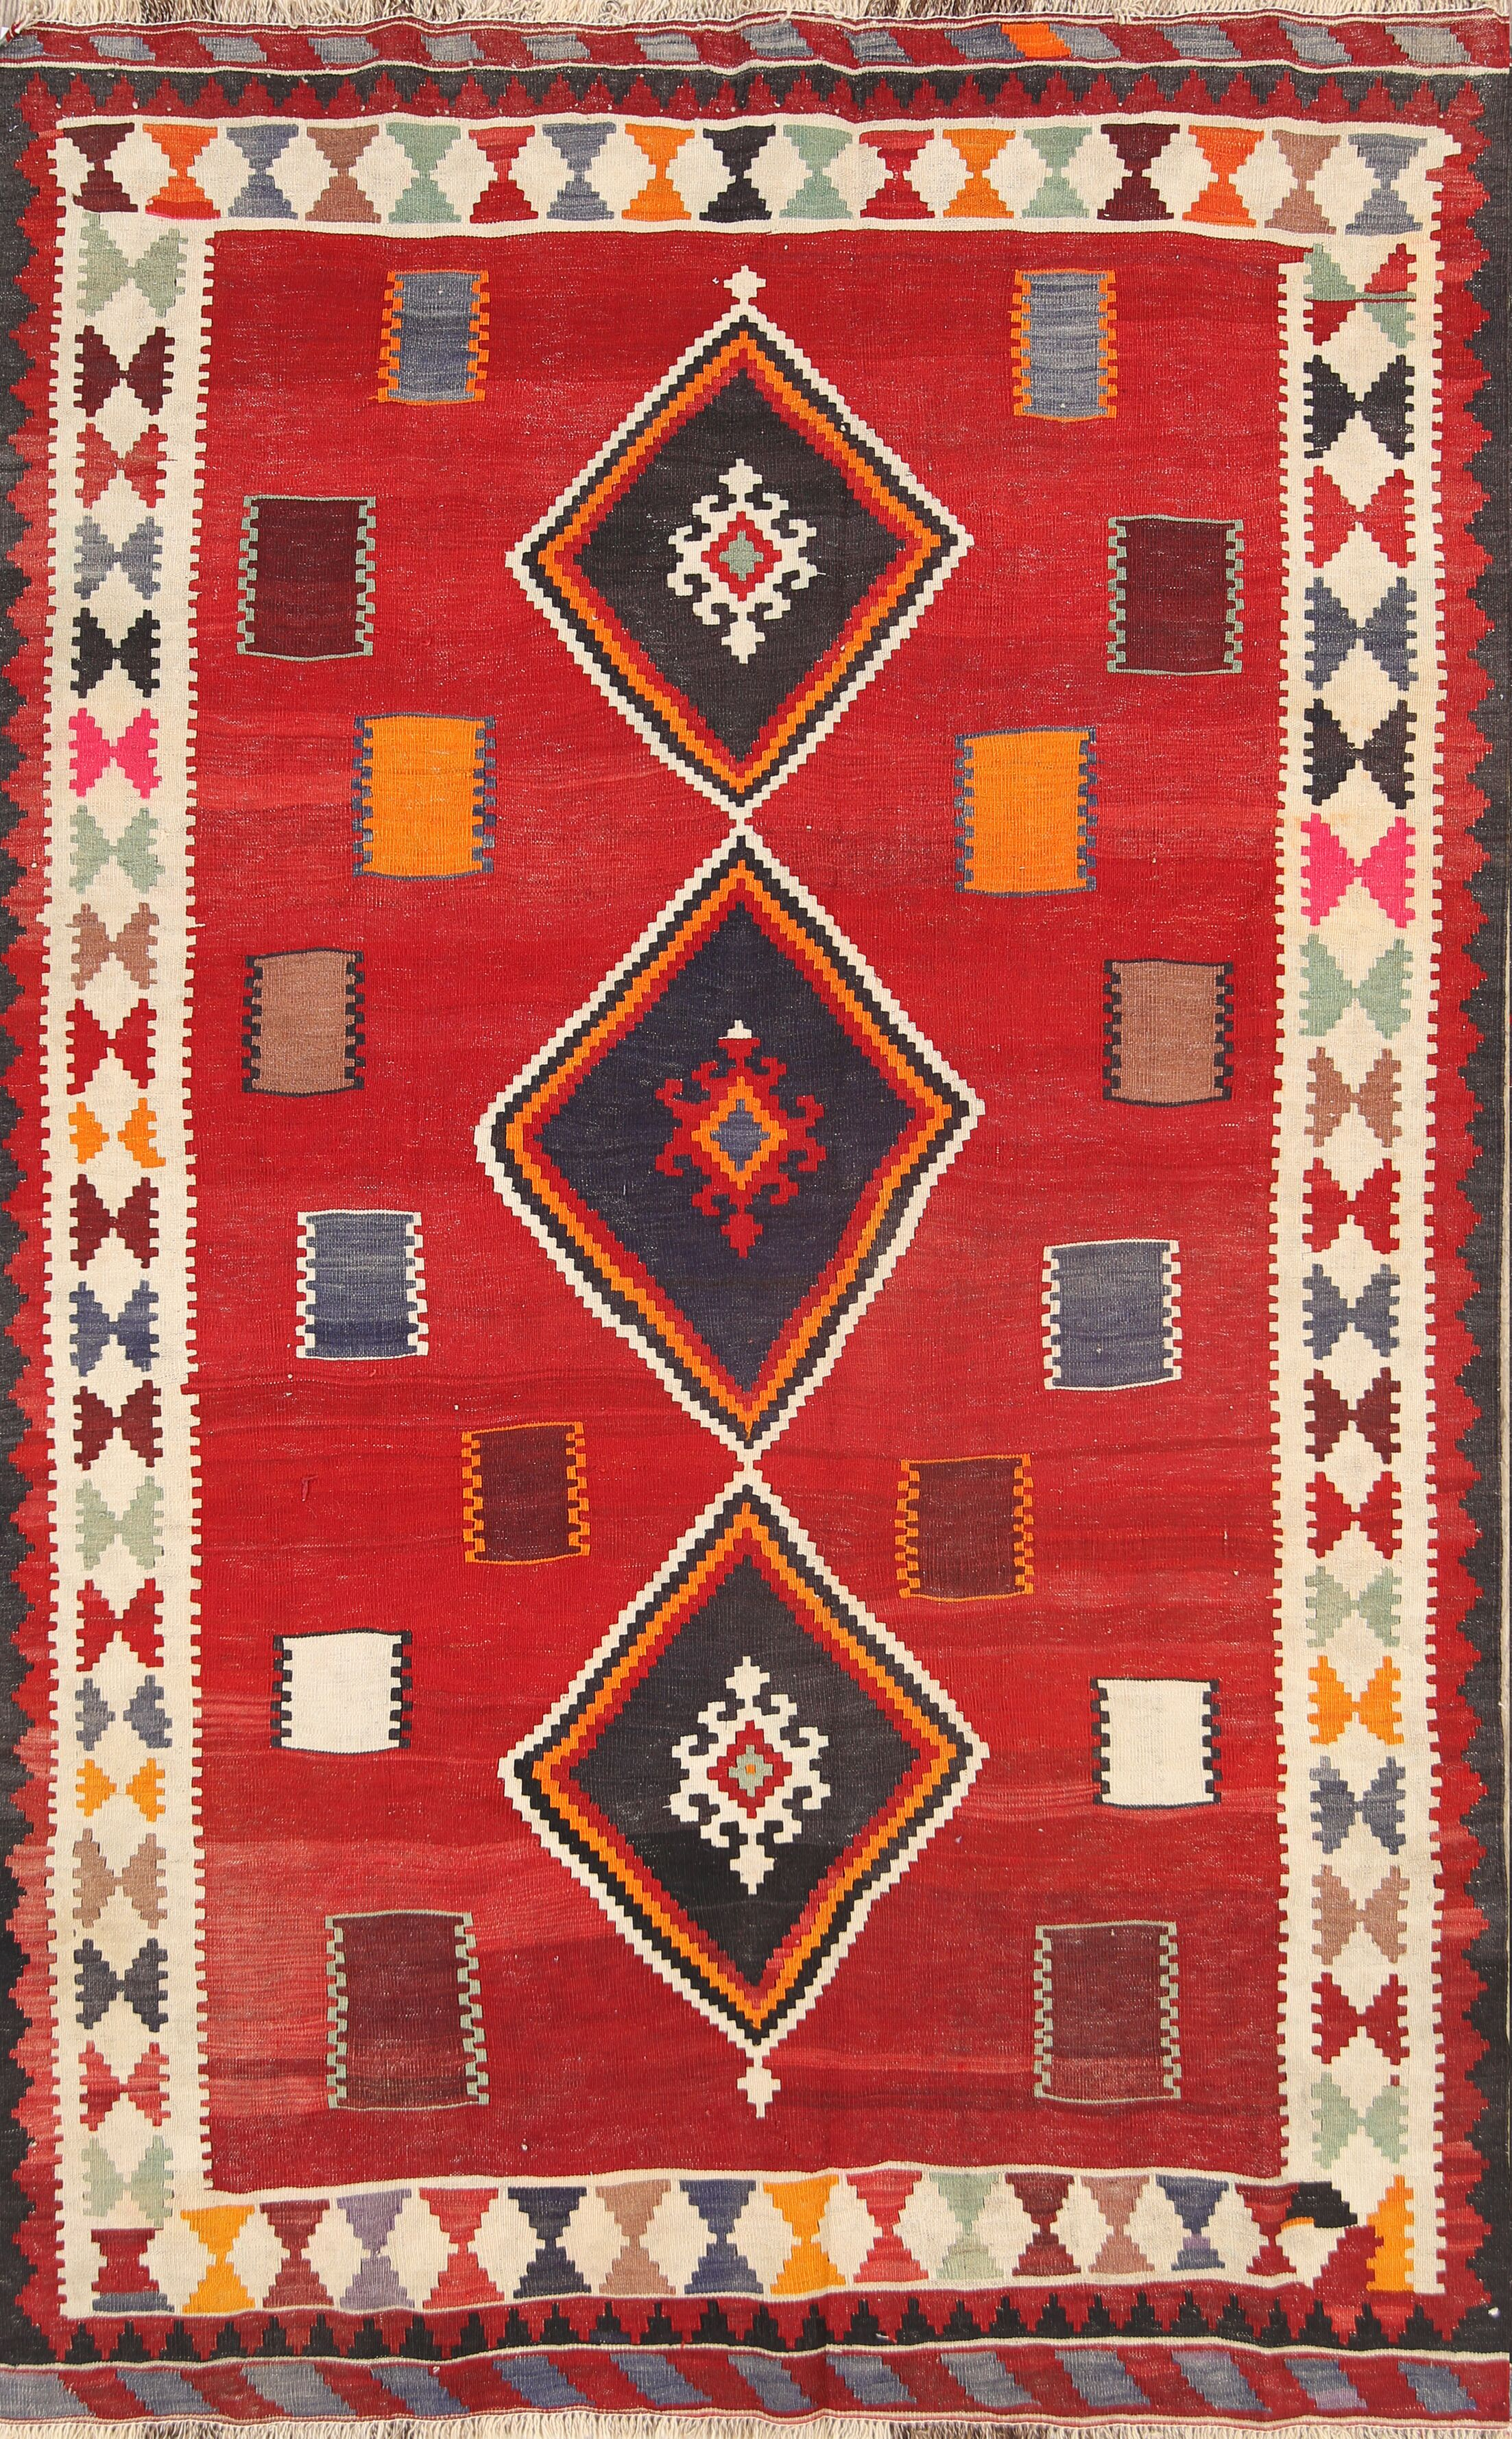 One-of-a-Kind Kilim Qashqai Shiraz Vintage Persian Traditional Hand-Knotted 5'2